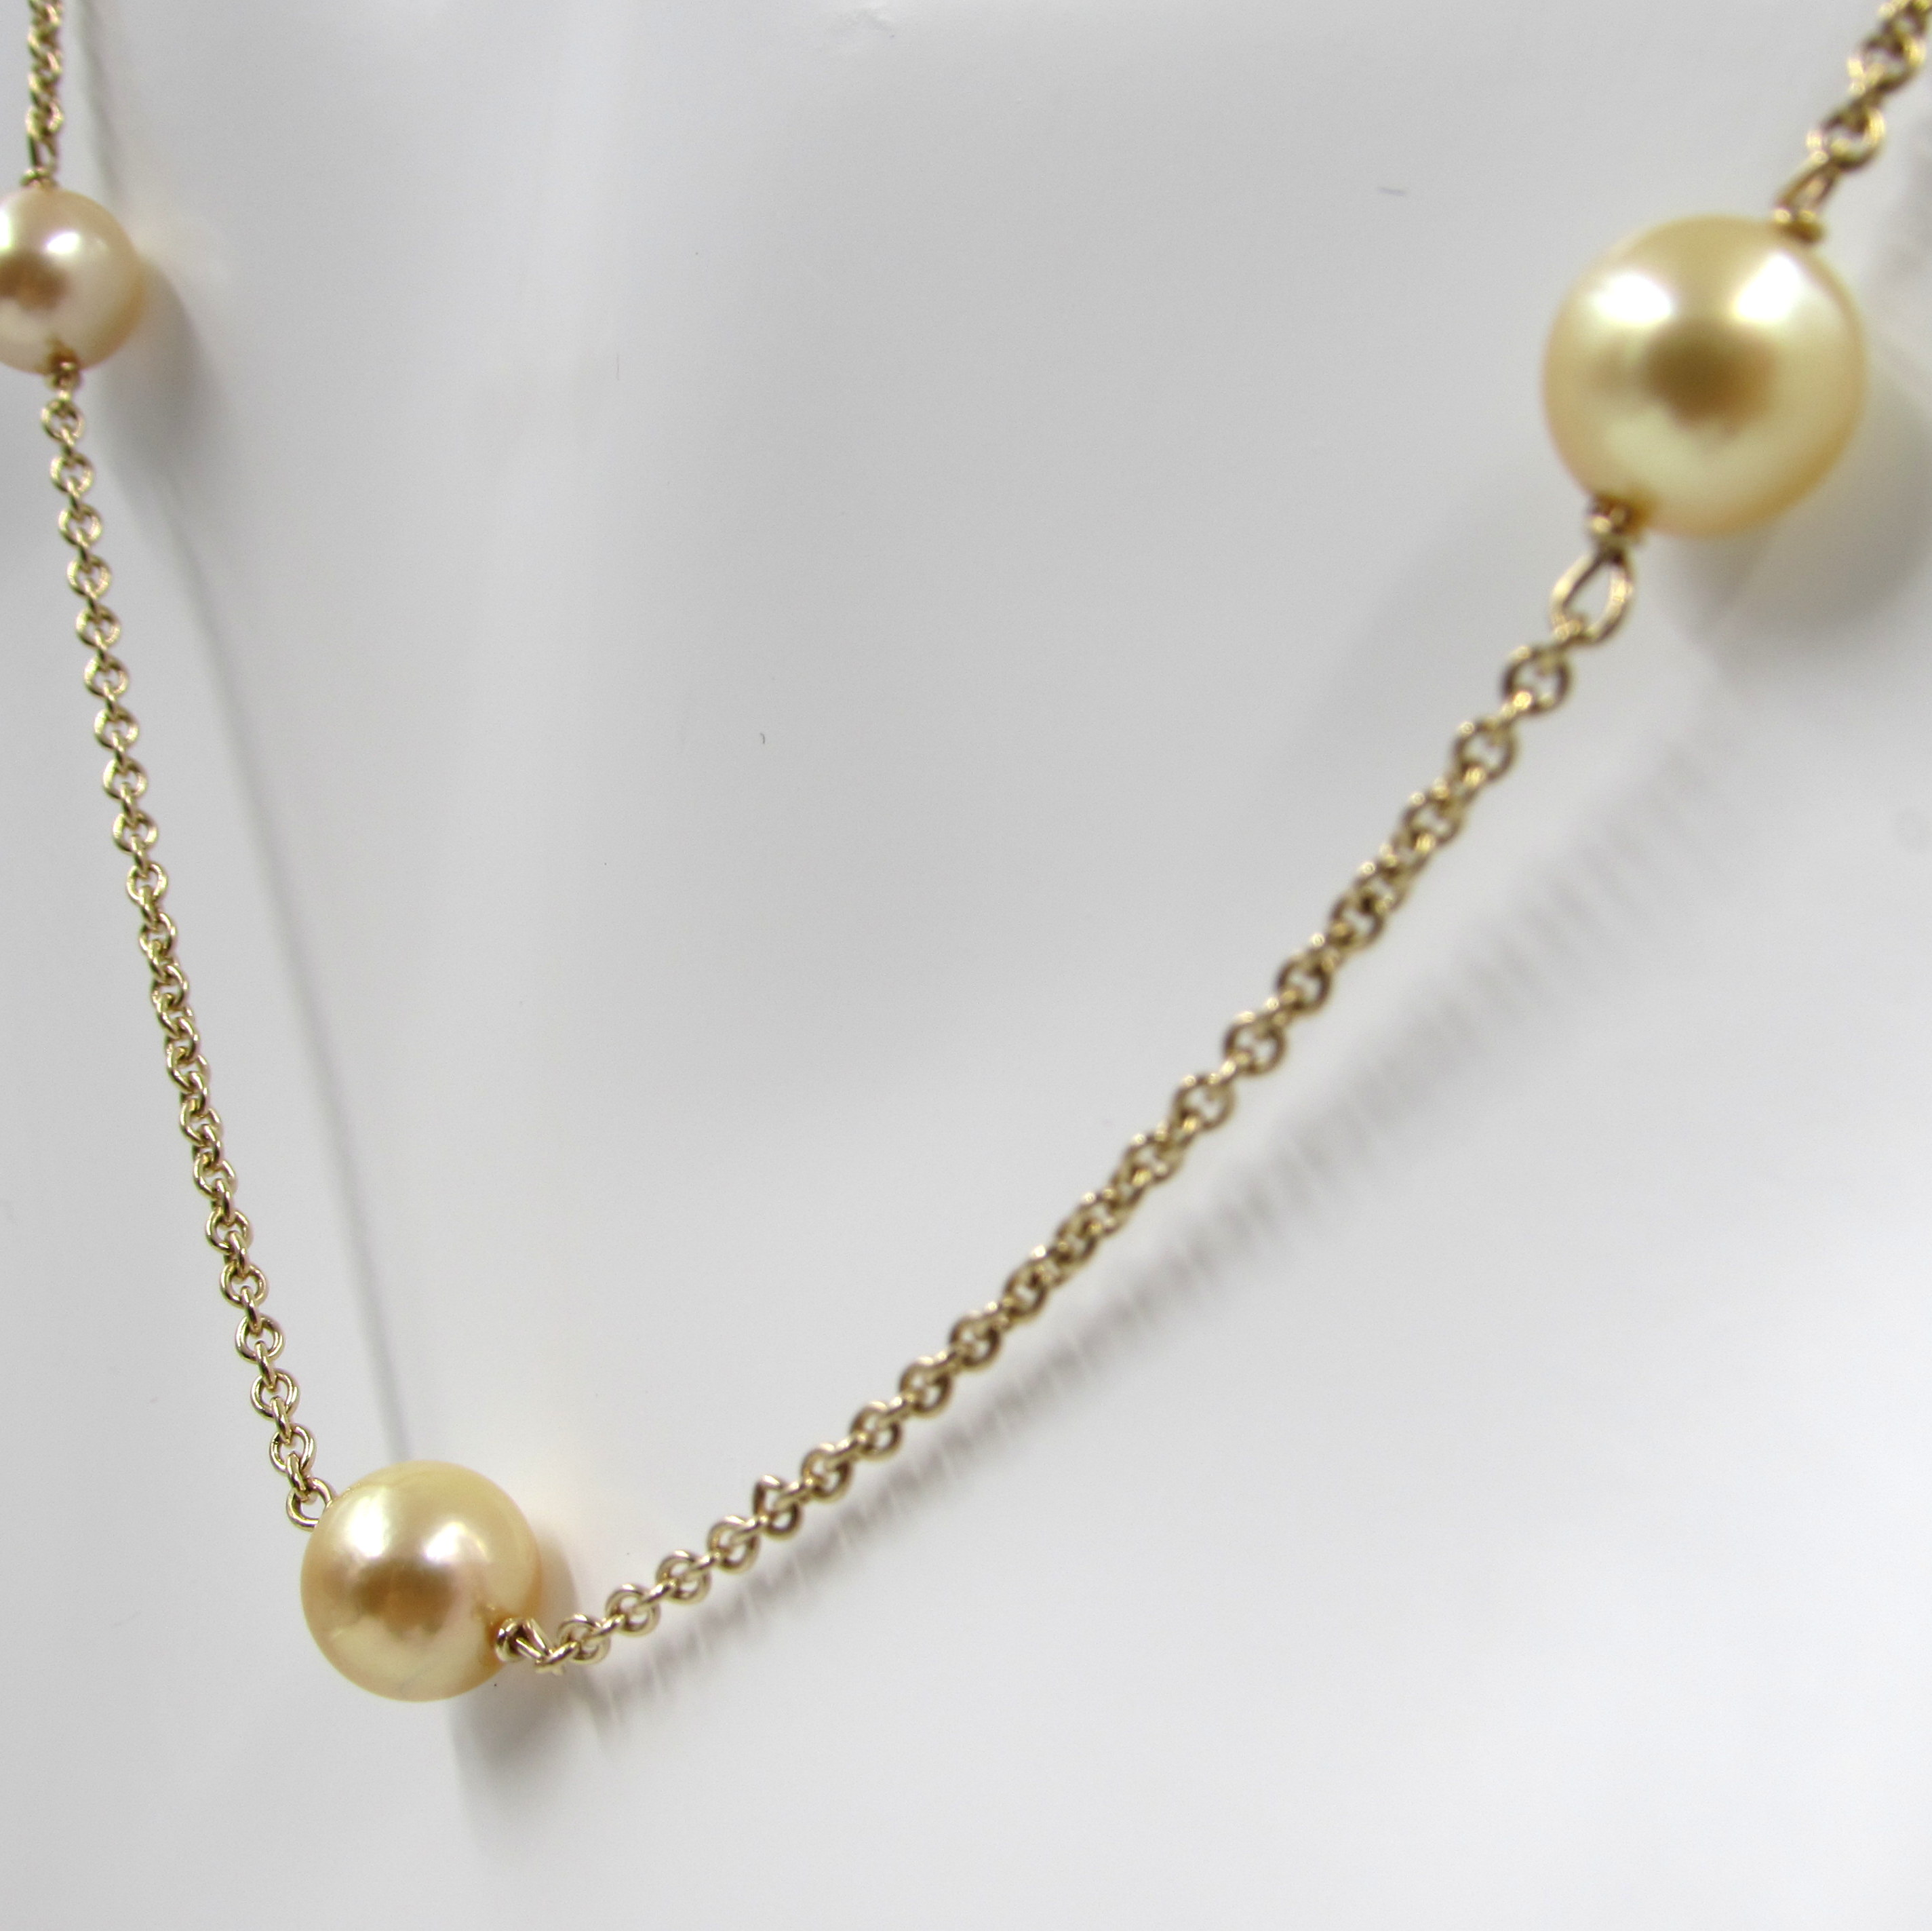 with shop crop false jewellery the editor earrings gold set scale pearls product pearl subsampling south golden sea upscale in yellow winterson stud